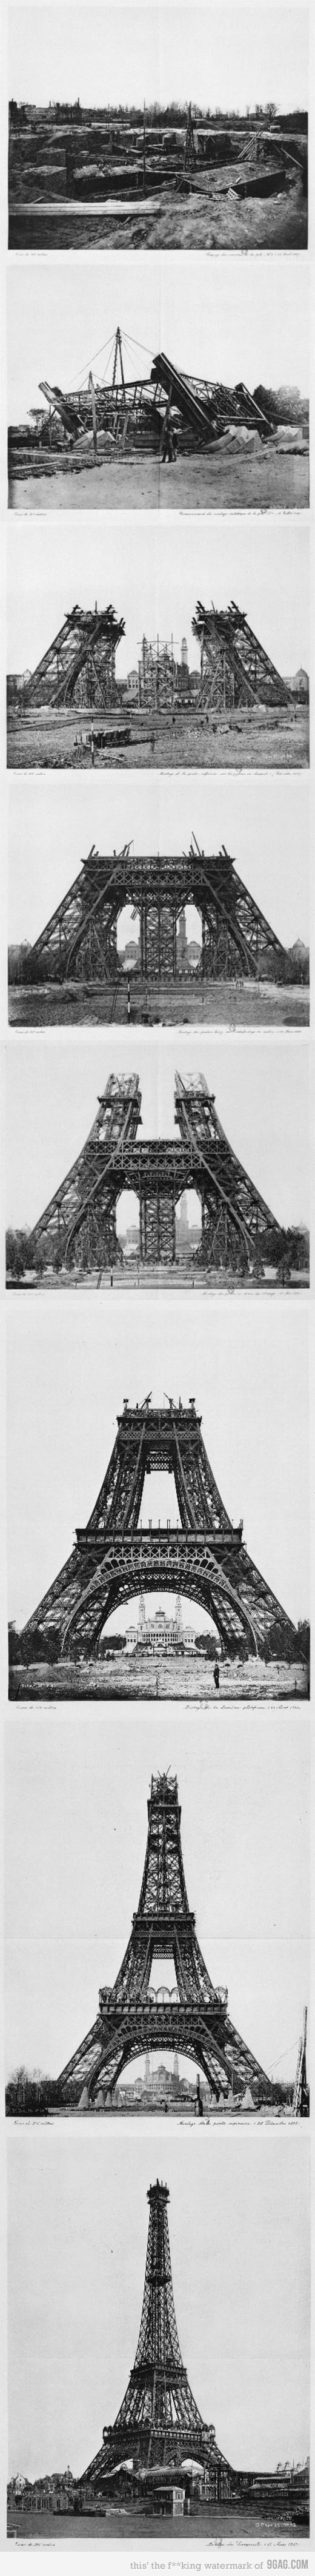 Eiffel Tower About Eiffel Tower Historical Creation Photograph of Eiffel Tower Photo 360